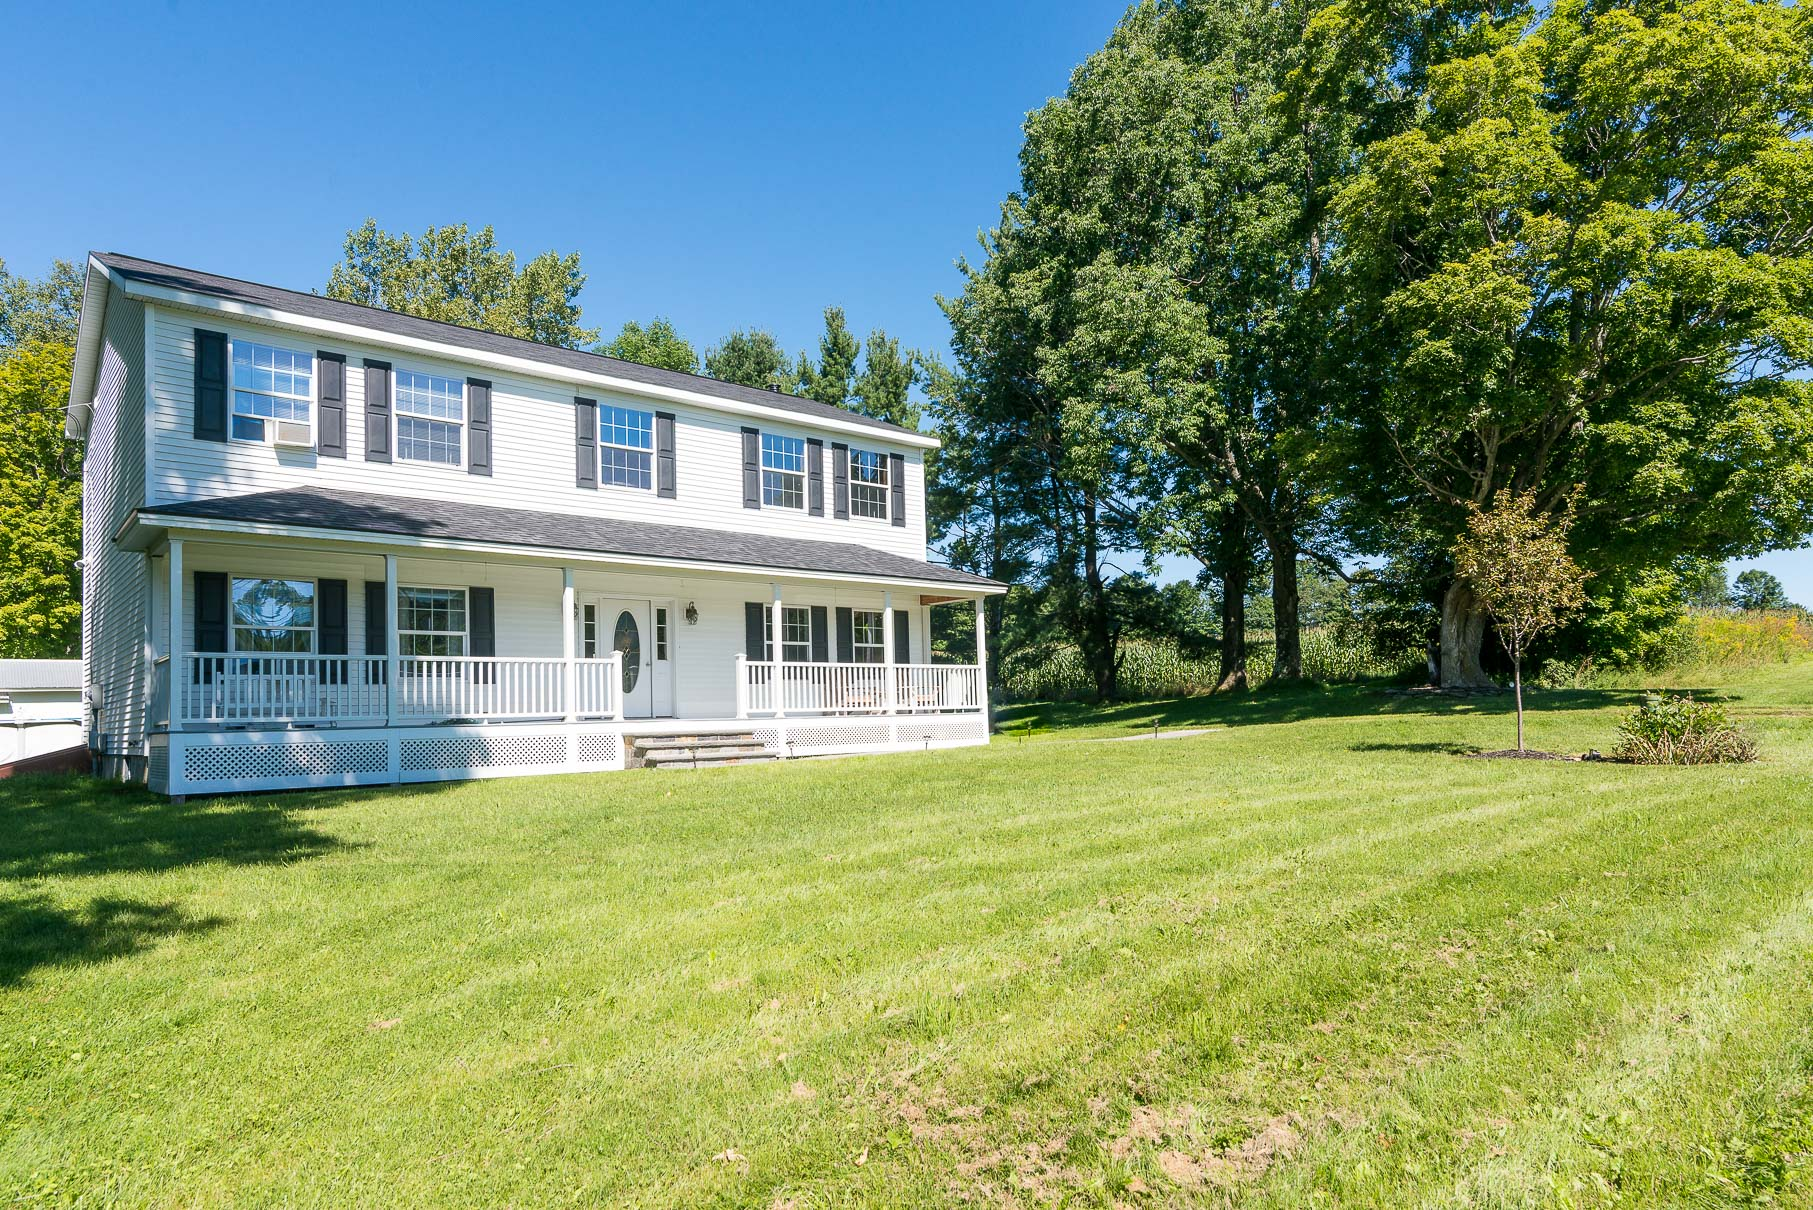 Single Family Home for Sale at Newer Colonial in Quintessential Country Location 3869 Brook Rd Danby, Vermont 05739 United States